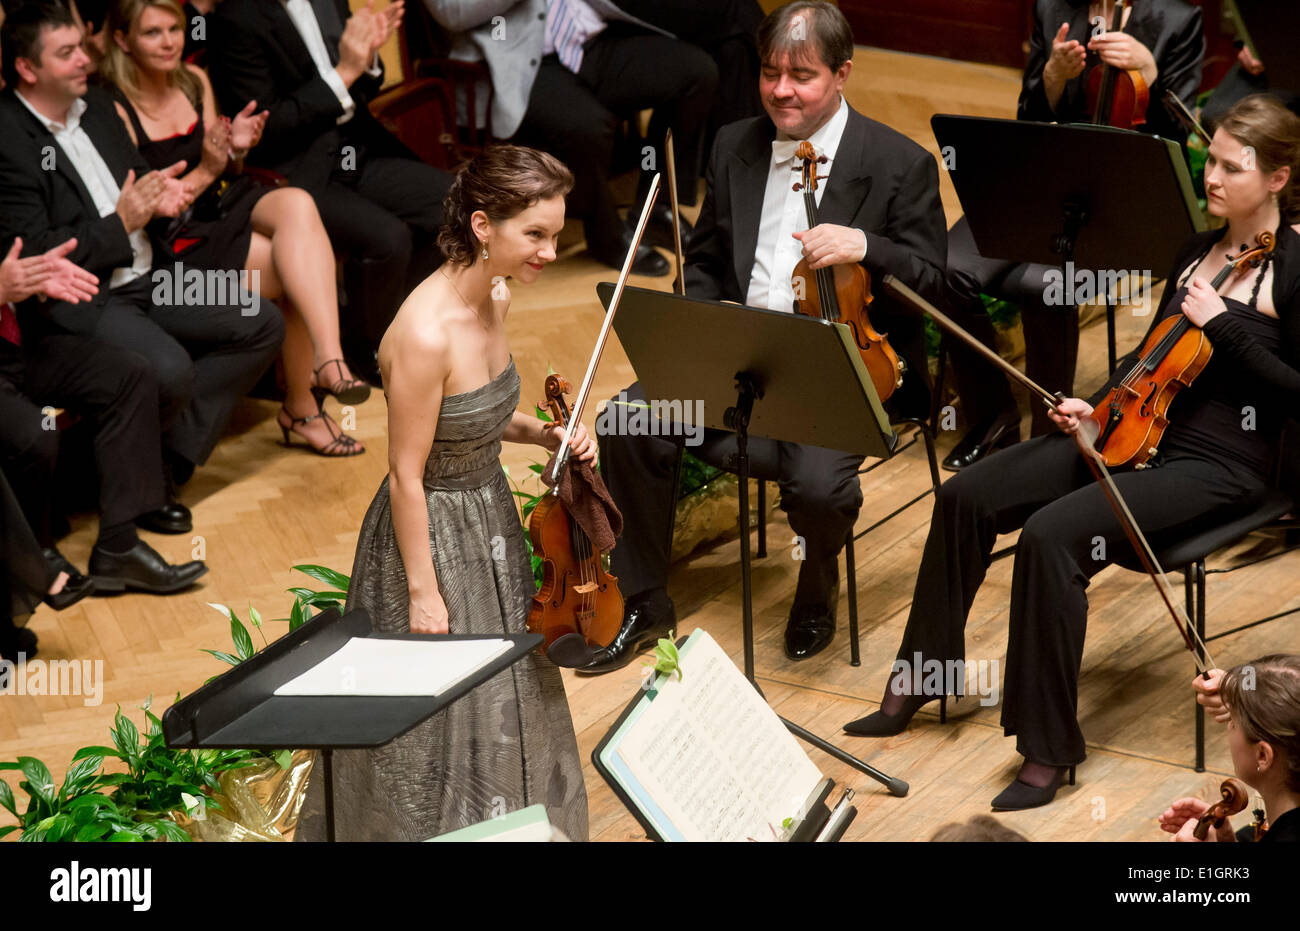 Frankfurt Radio Symphonic Orchestra conducted by Estonian conductor Paavo Jarvi performed during the closing concert of the 69th year of the Prague Spring in Smetana Hall on June 3, 2014 in Prague, Czech Republic. Pictured centre American violinist Hilary Hahn. (CTK Photo/Vit Simanek) - Stock Image